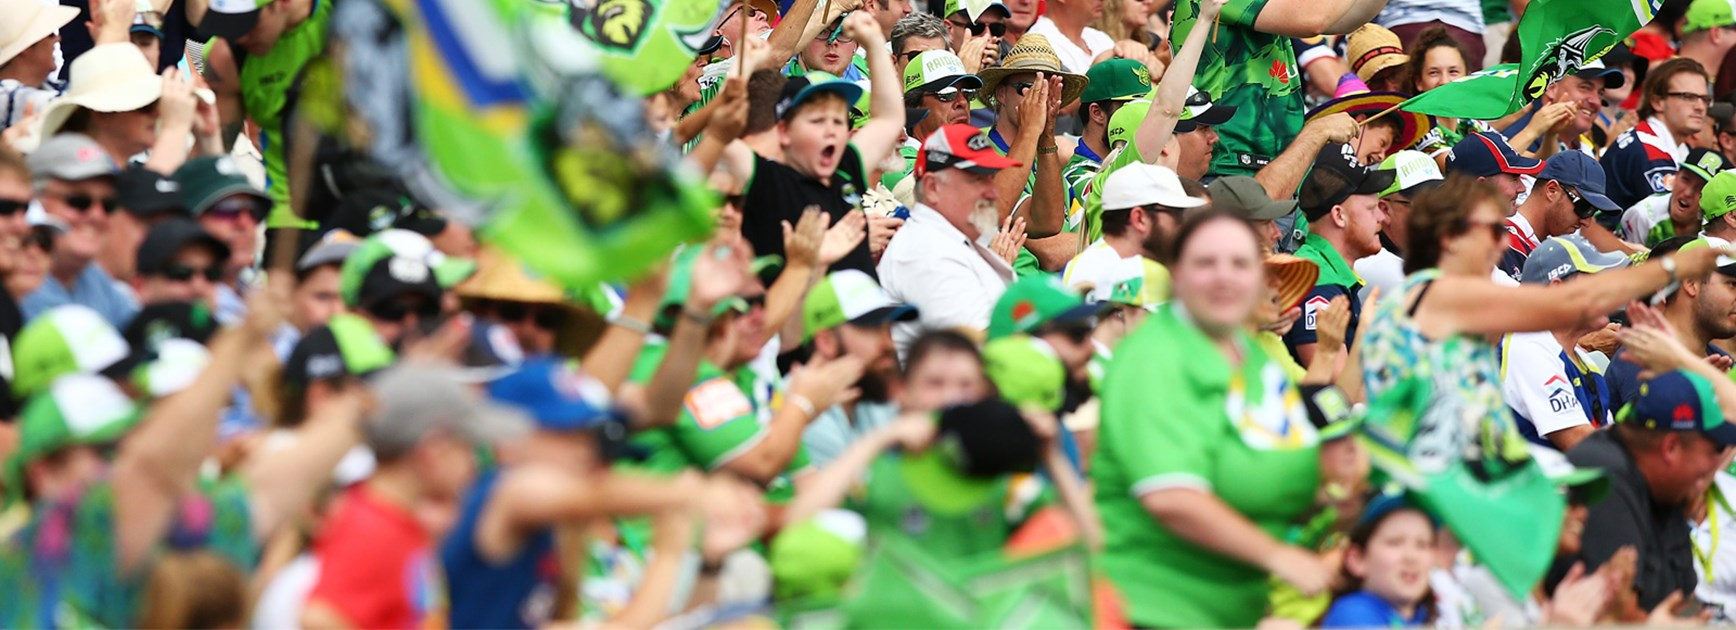 Canberra Raiders fans celebrate their team's win over the Roosters in Round 2.